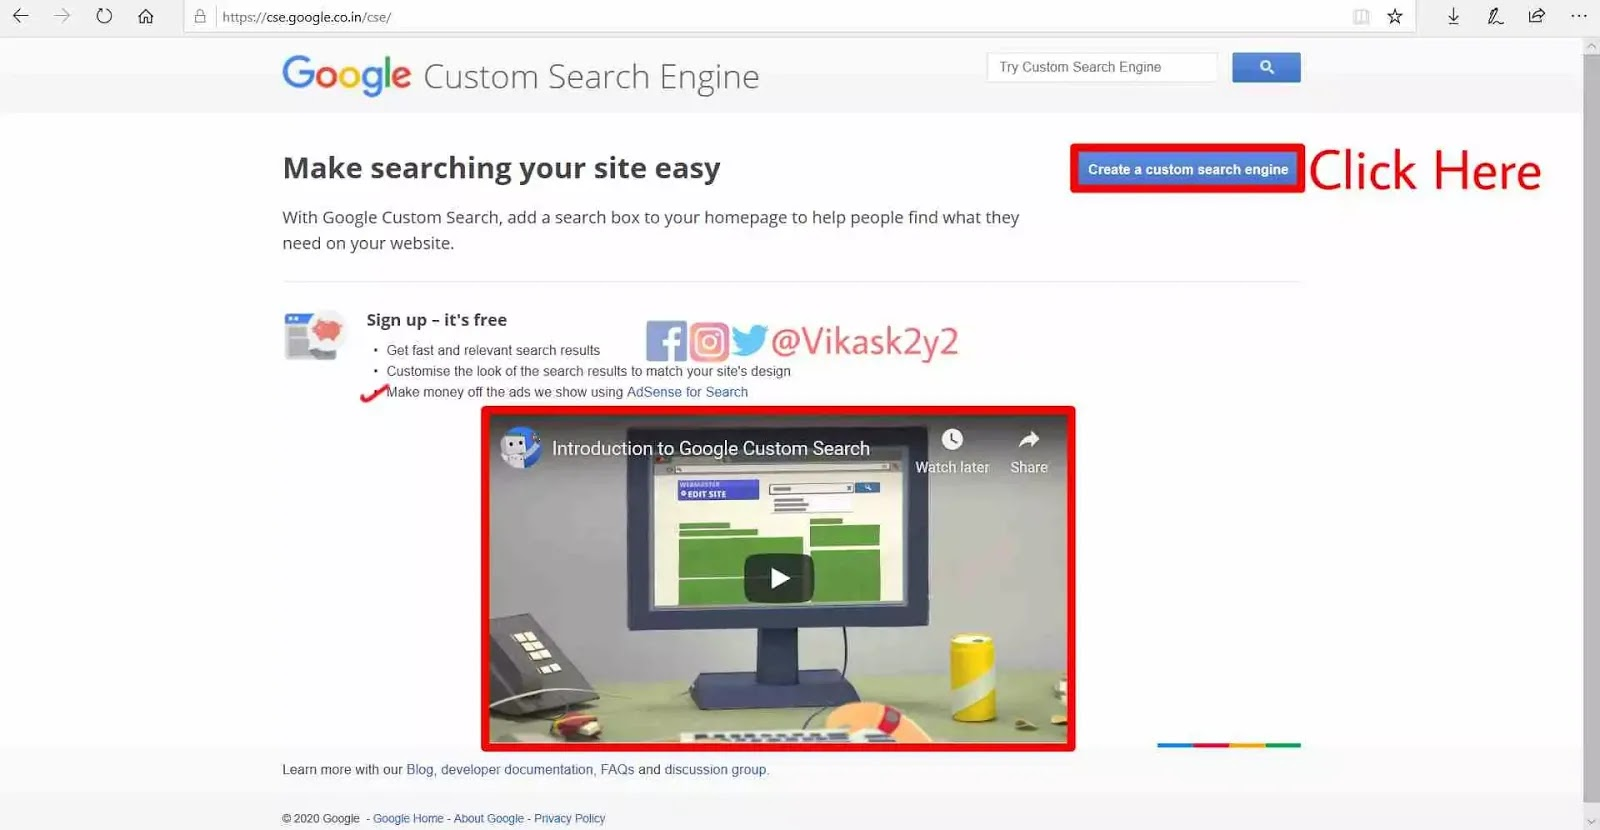 Click on create a custom search engine